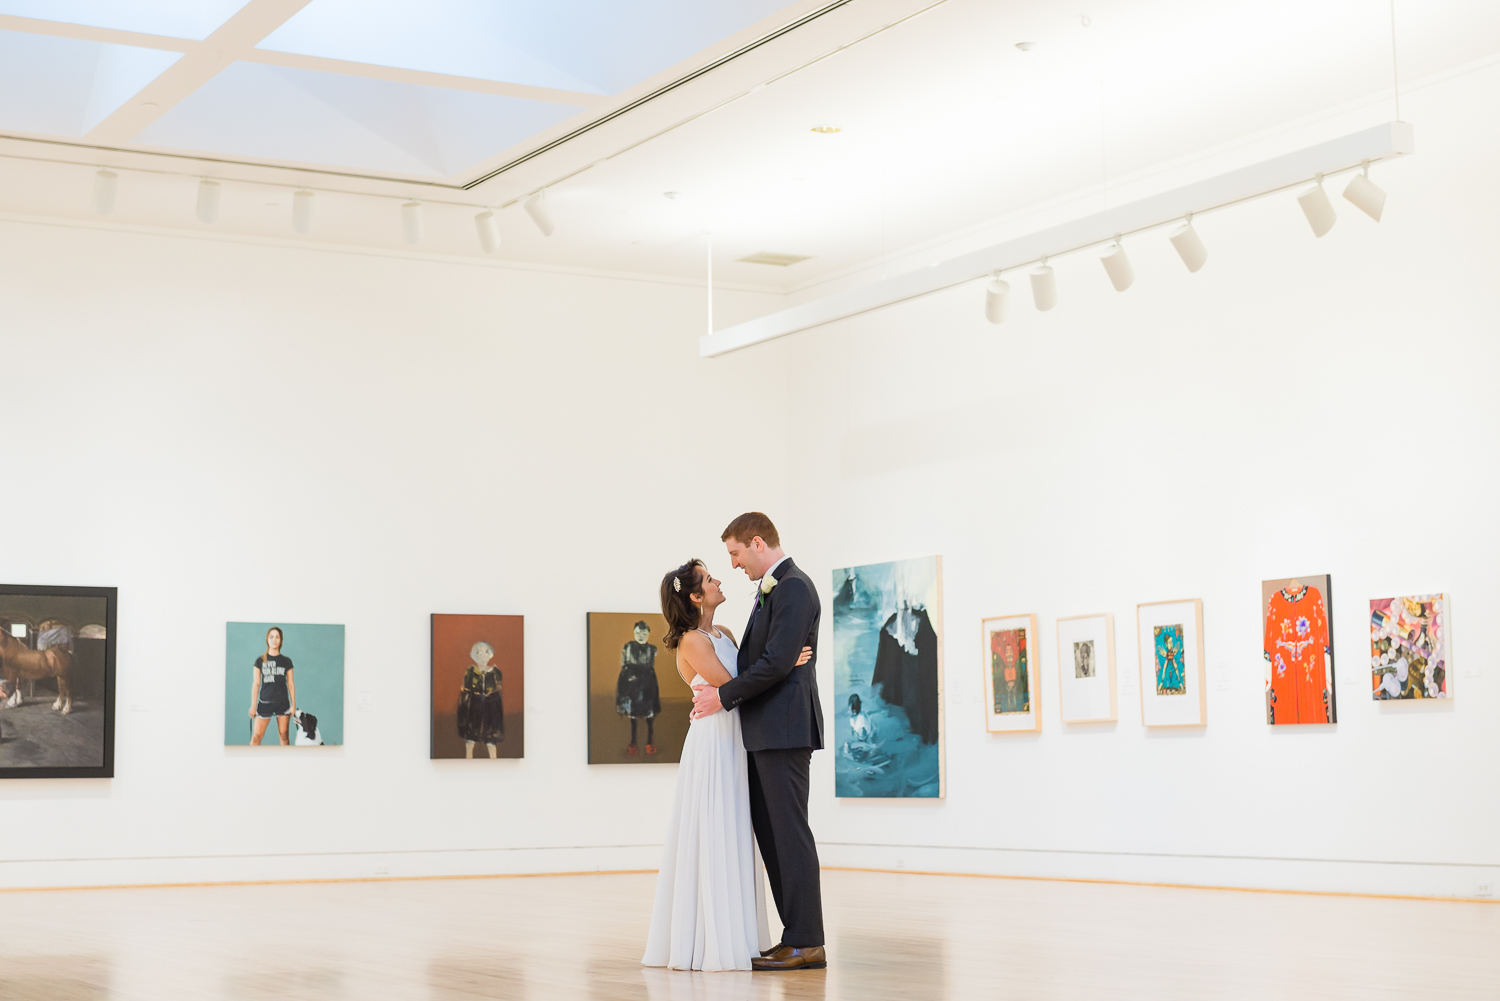 Bride and groom in an art gallery with paintings